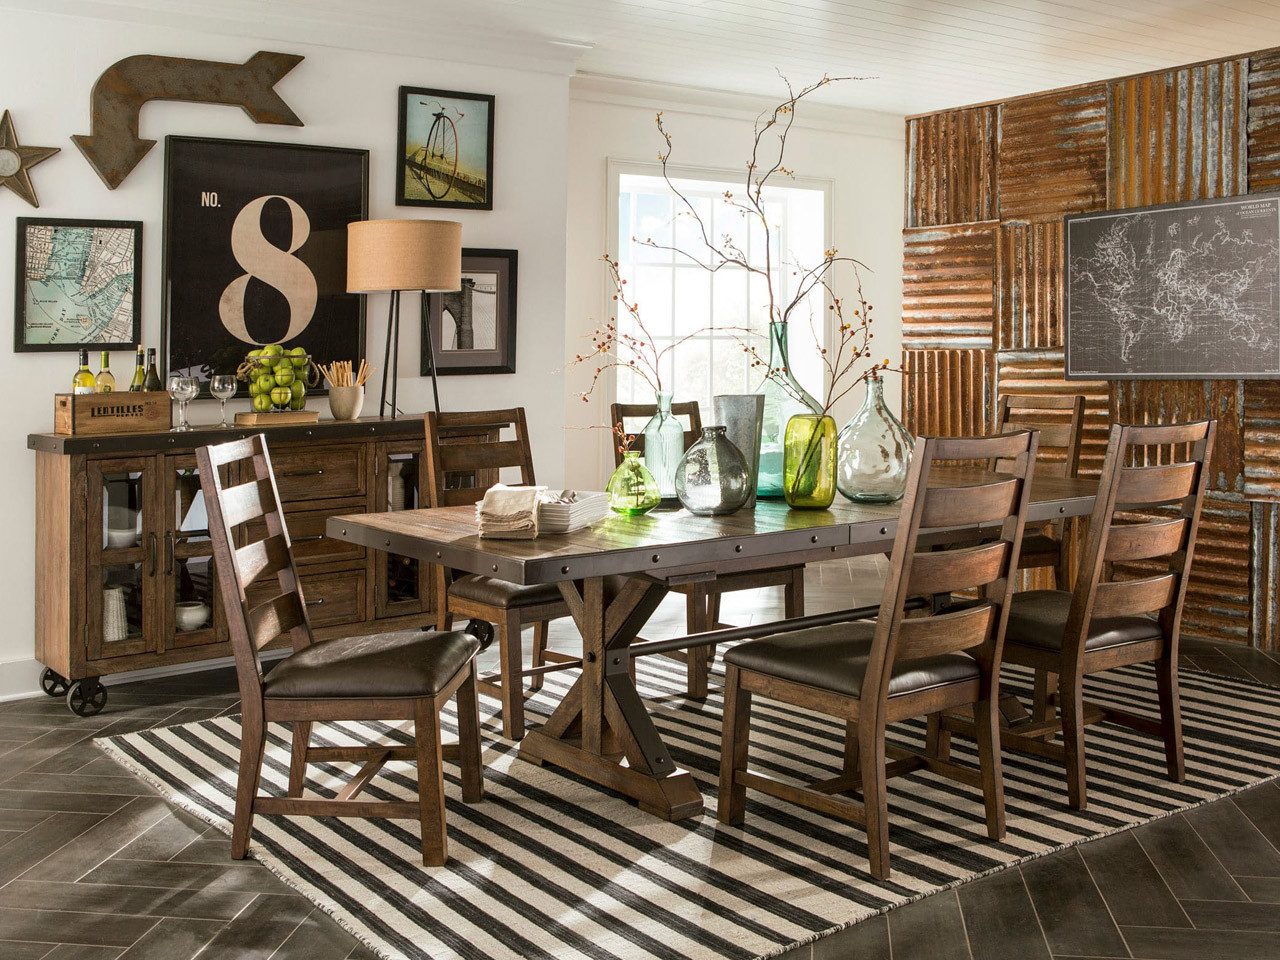 Taos Dining Set  $1299 For Table And 4 Chairs Winter Sale Special